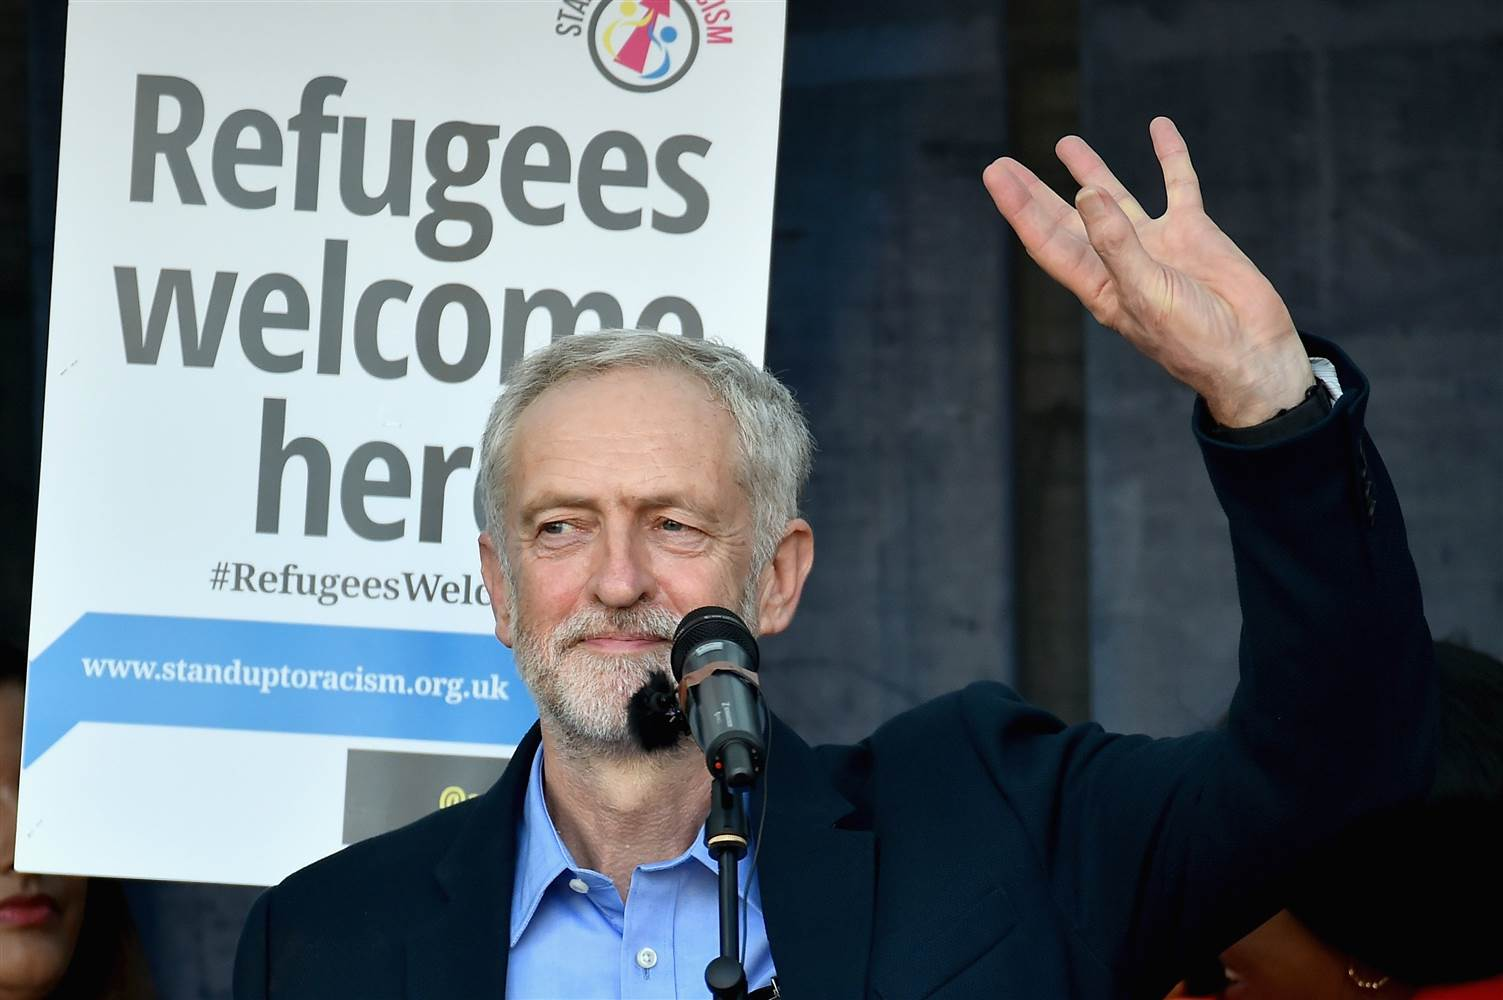 jeremy and refugees